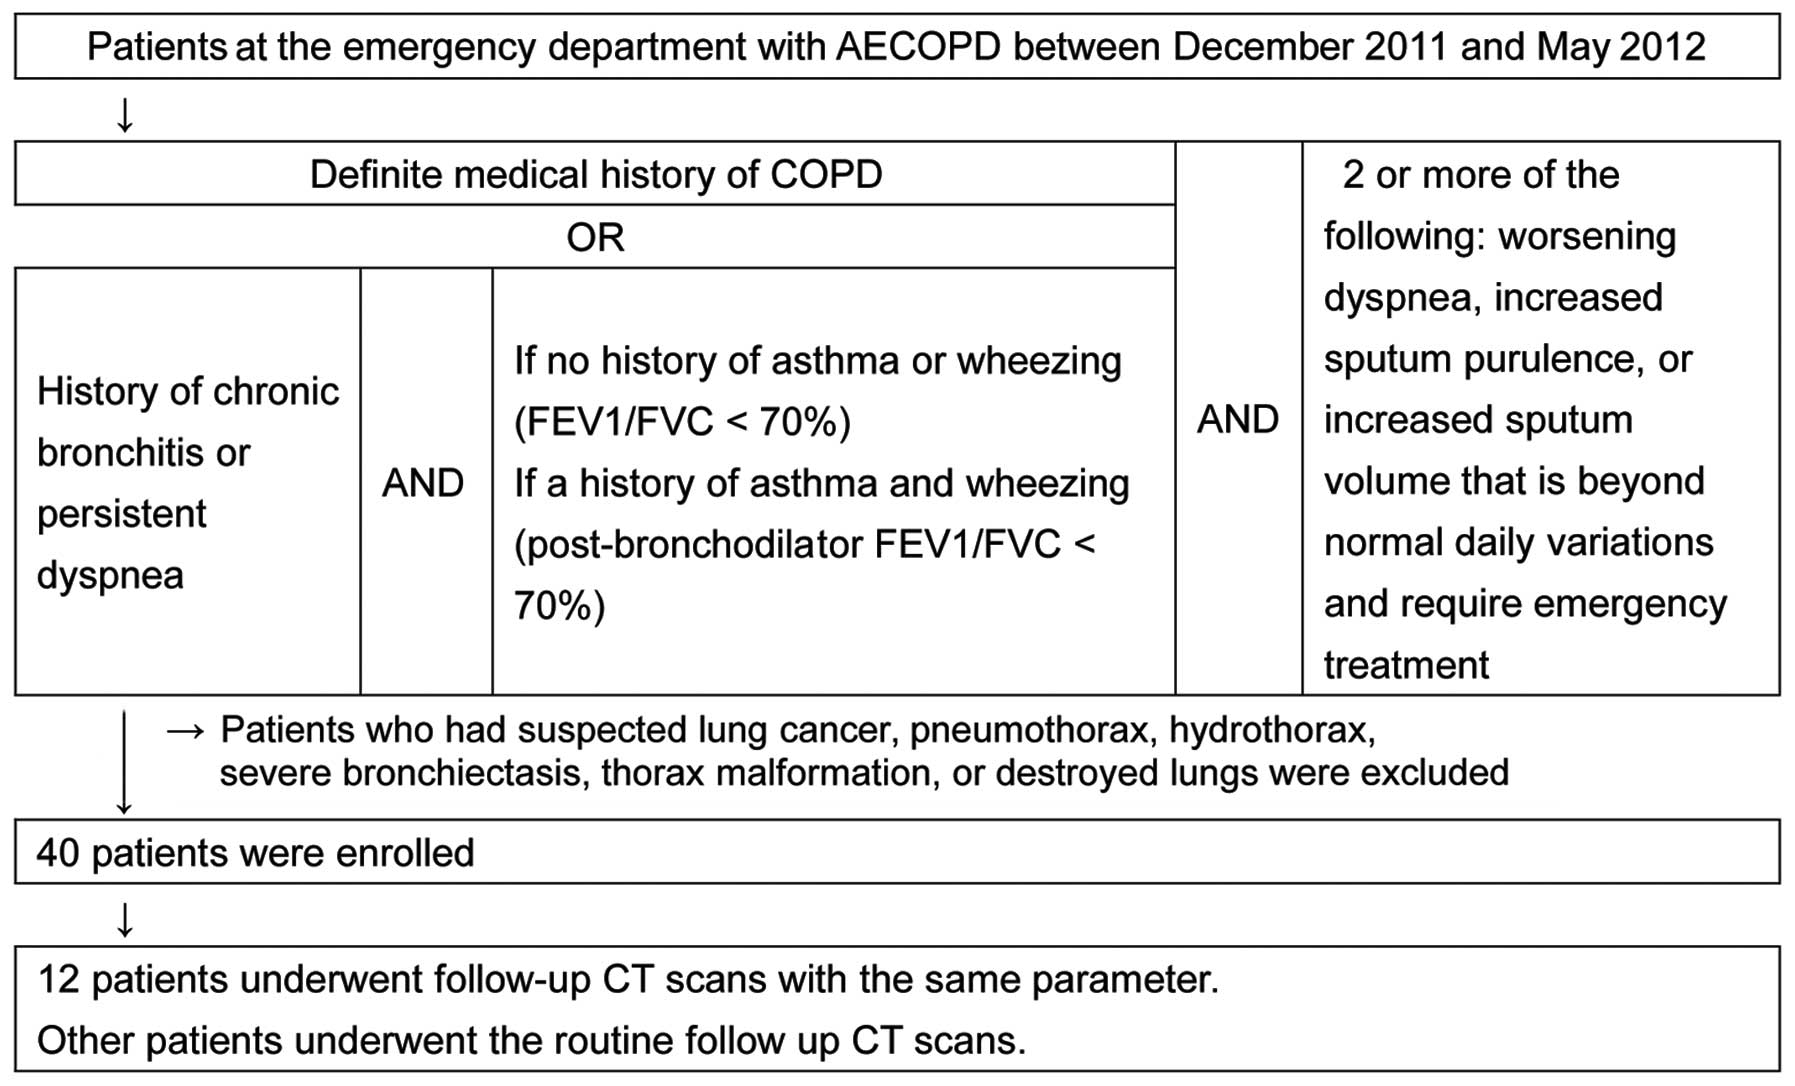 chronic obstructive pulmonary disease essay Essay on chronic obstructive pulmonary disease copd which is chronic obstructive pulmonary disease is known as a condition that progressively makes it harder to breathe because the airflow into and out of the lungs is reduced.